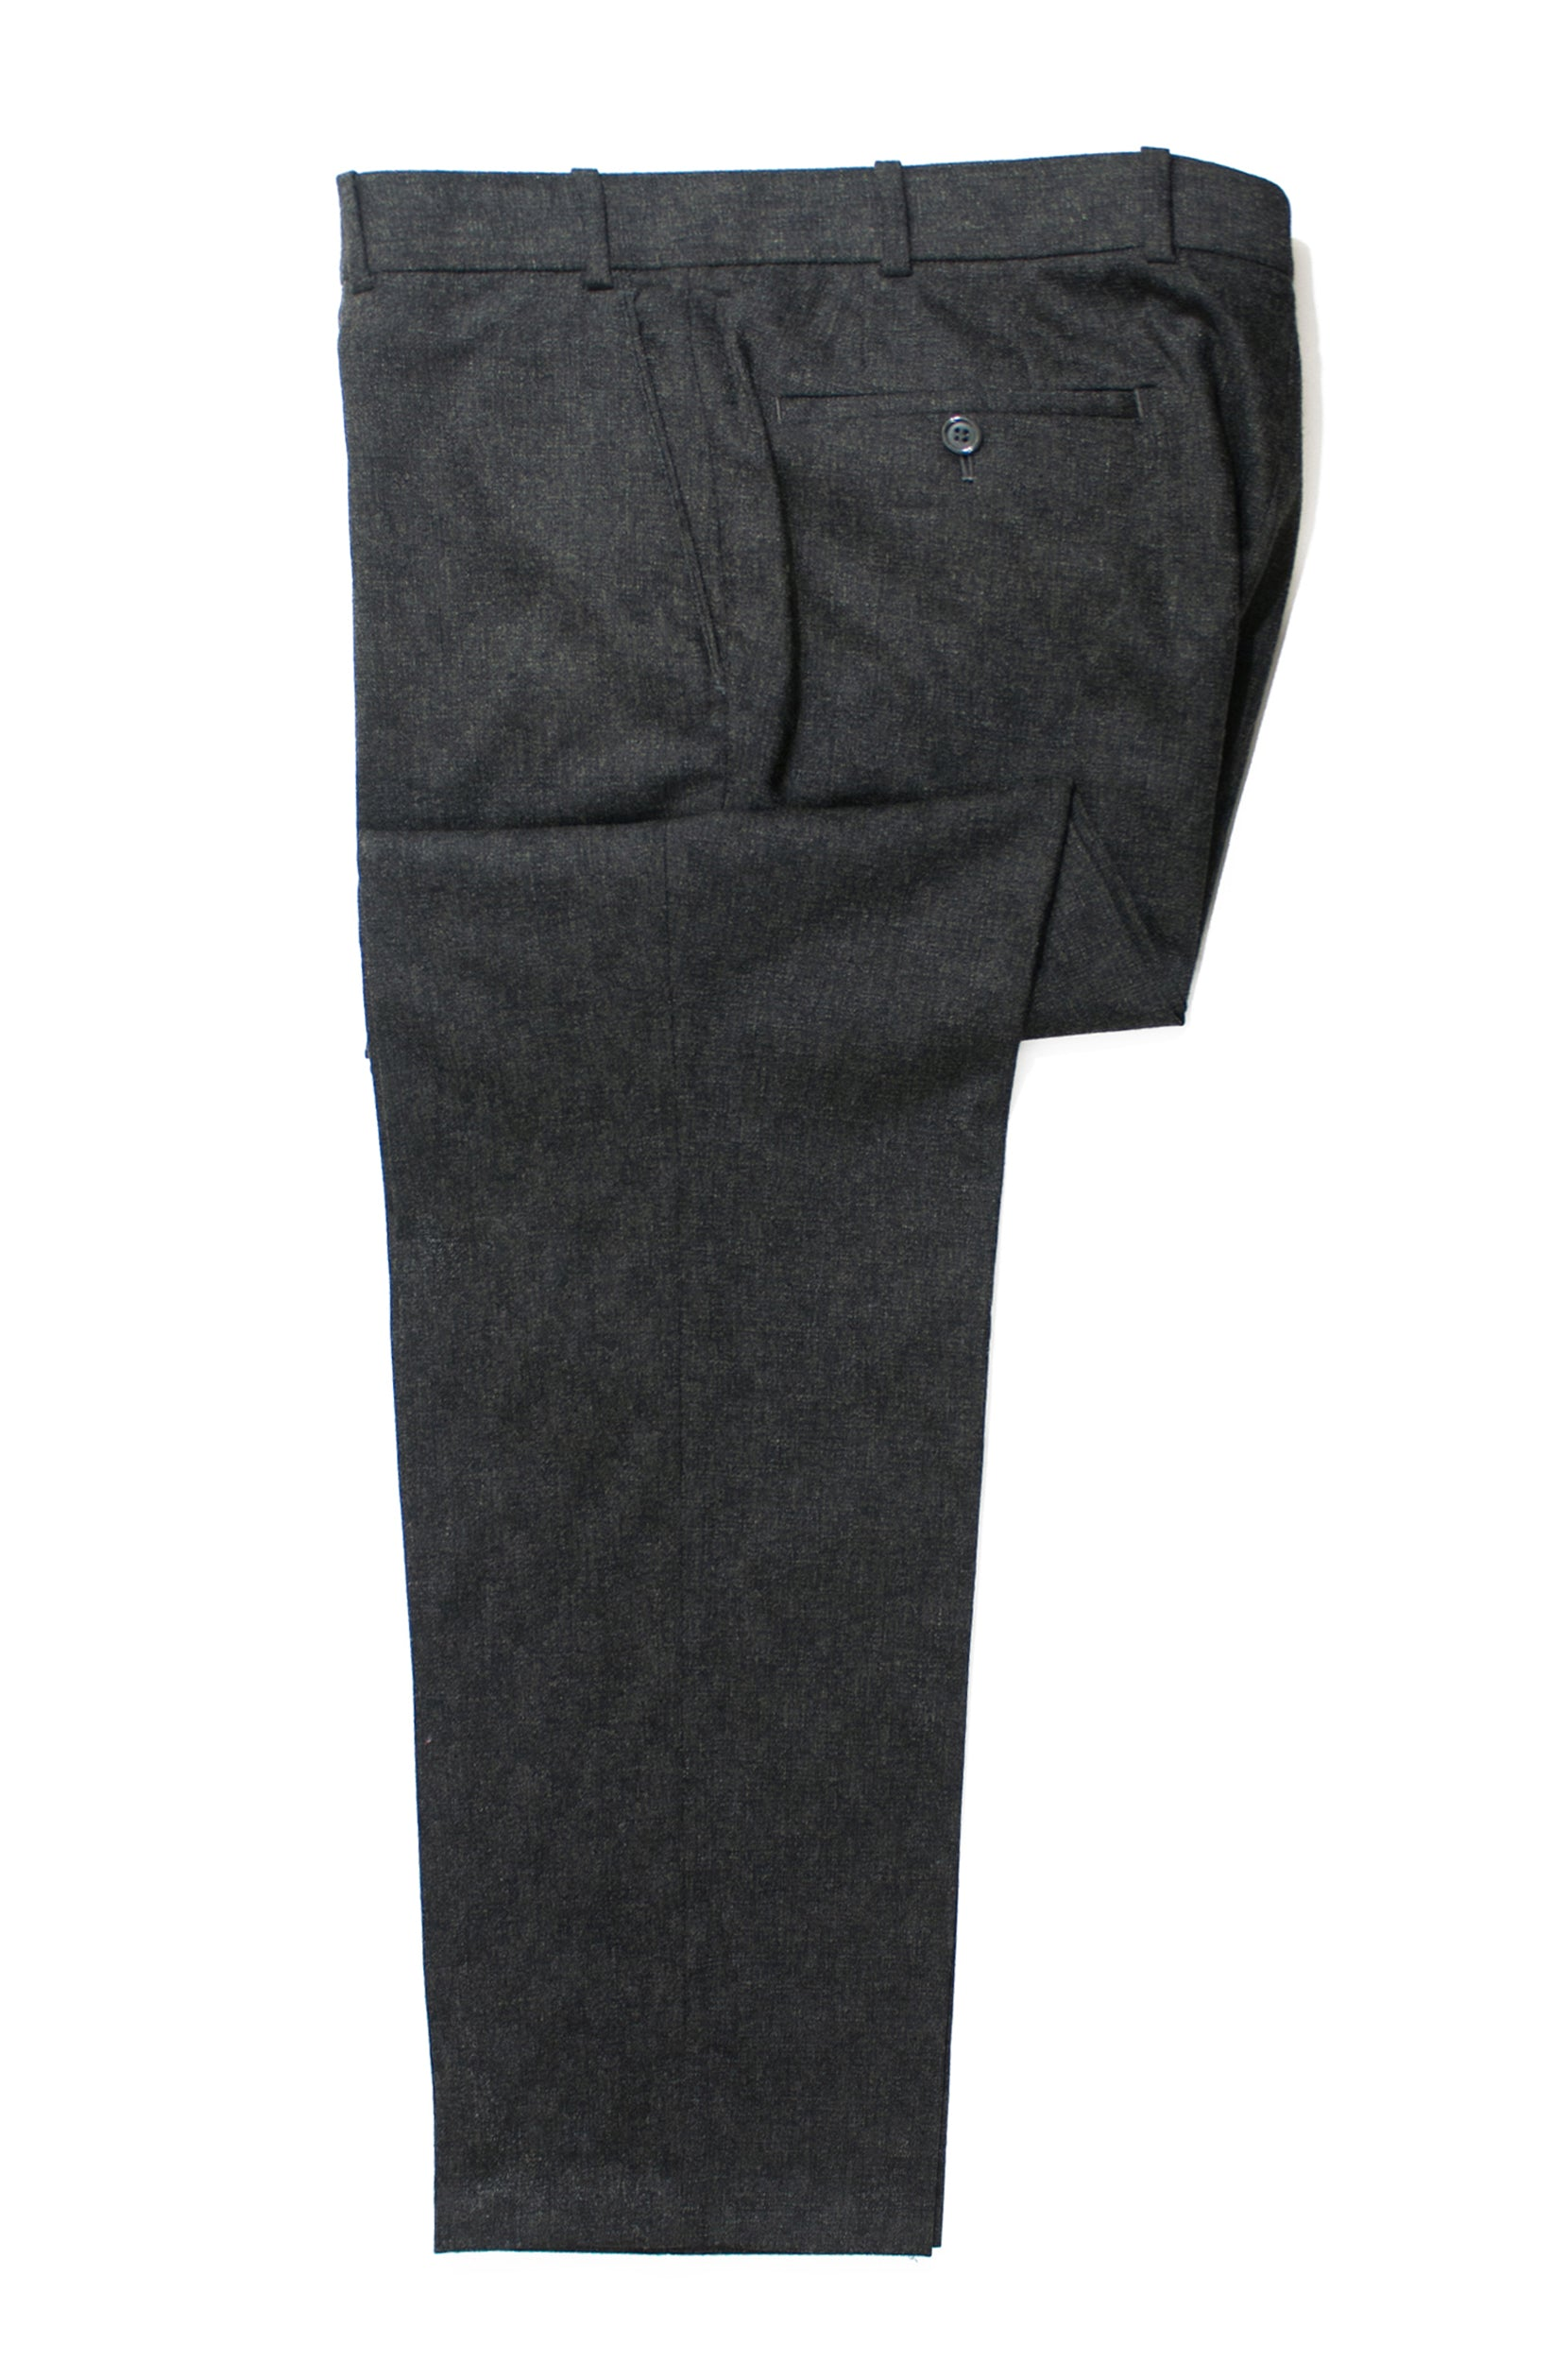 Antonio Valente Charcoal Grey Cashmere Blend Slim Fit Pants